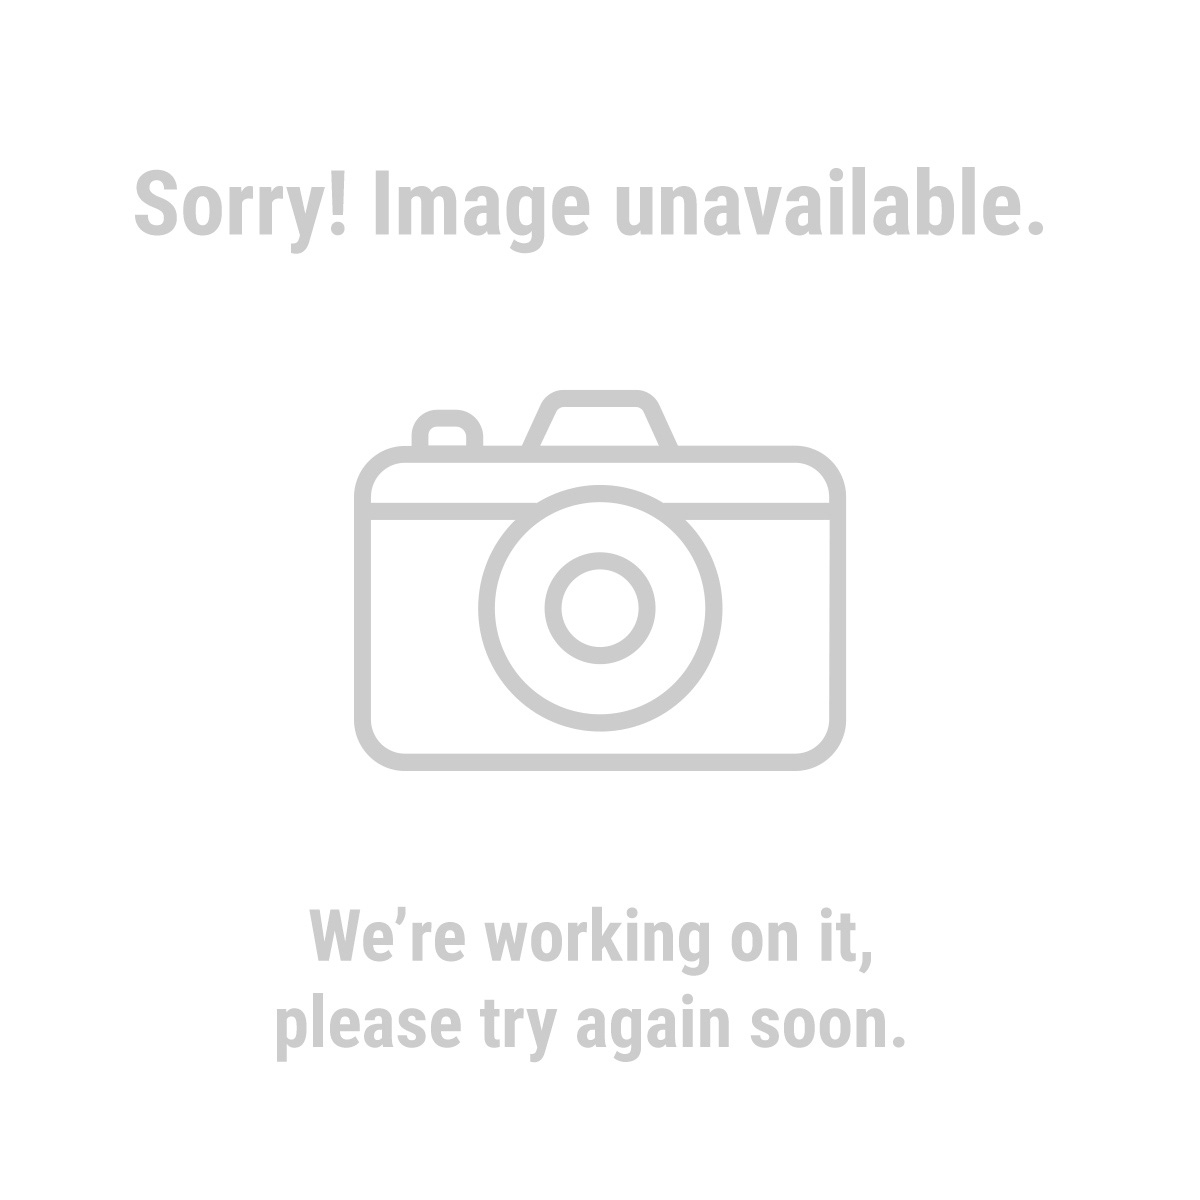 Portland Saw 68113 13 Piece Bi-metal Hole Saw Set